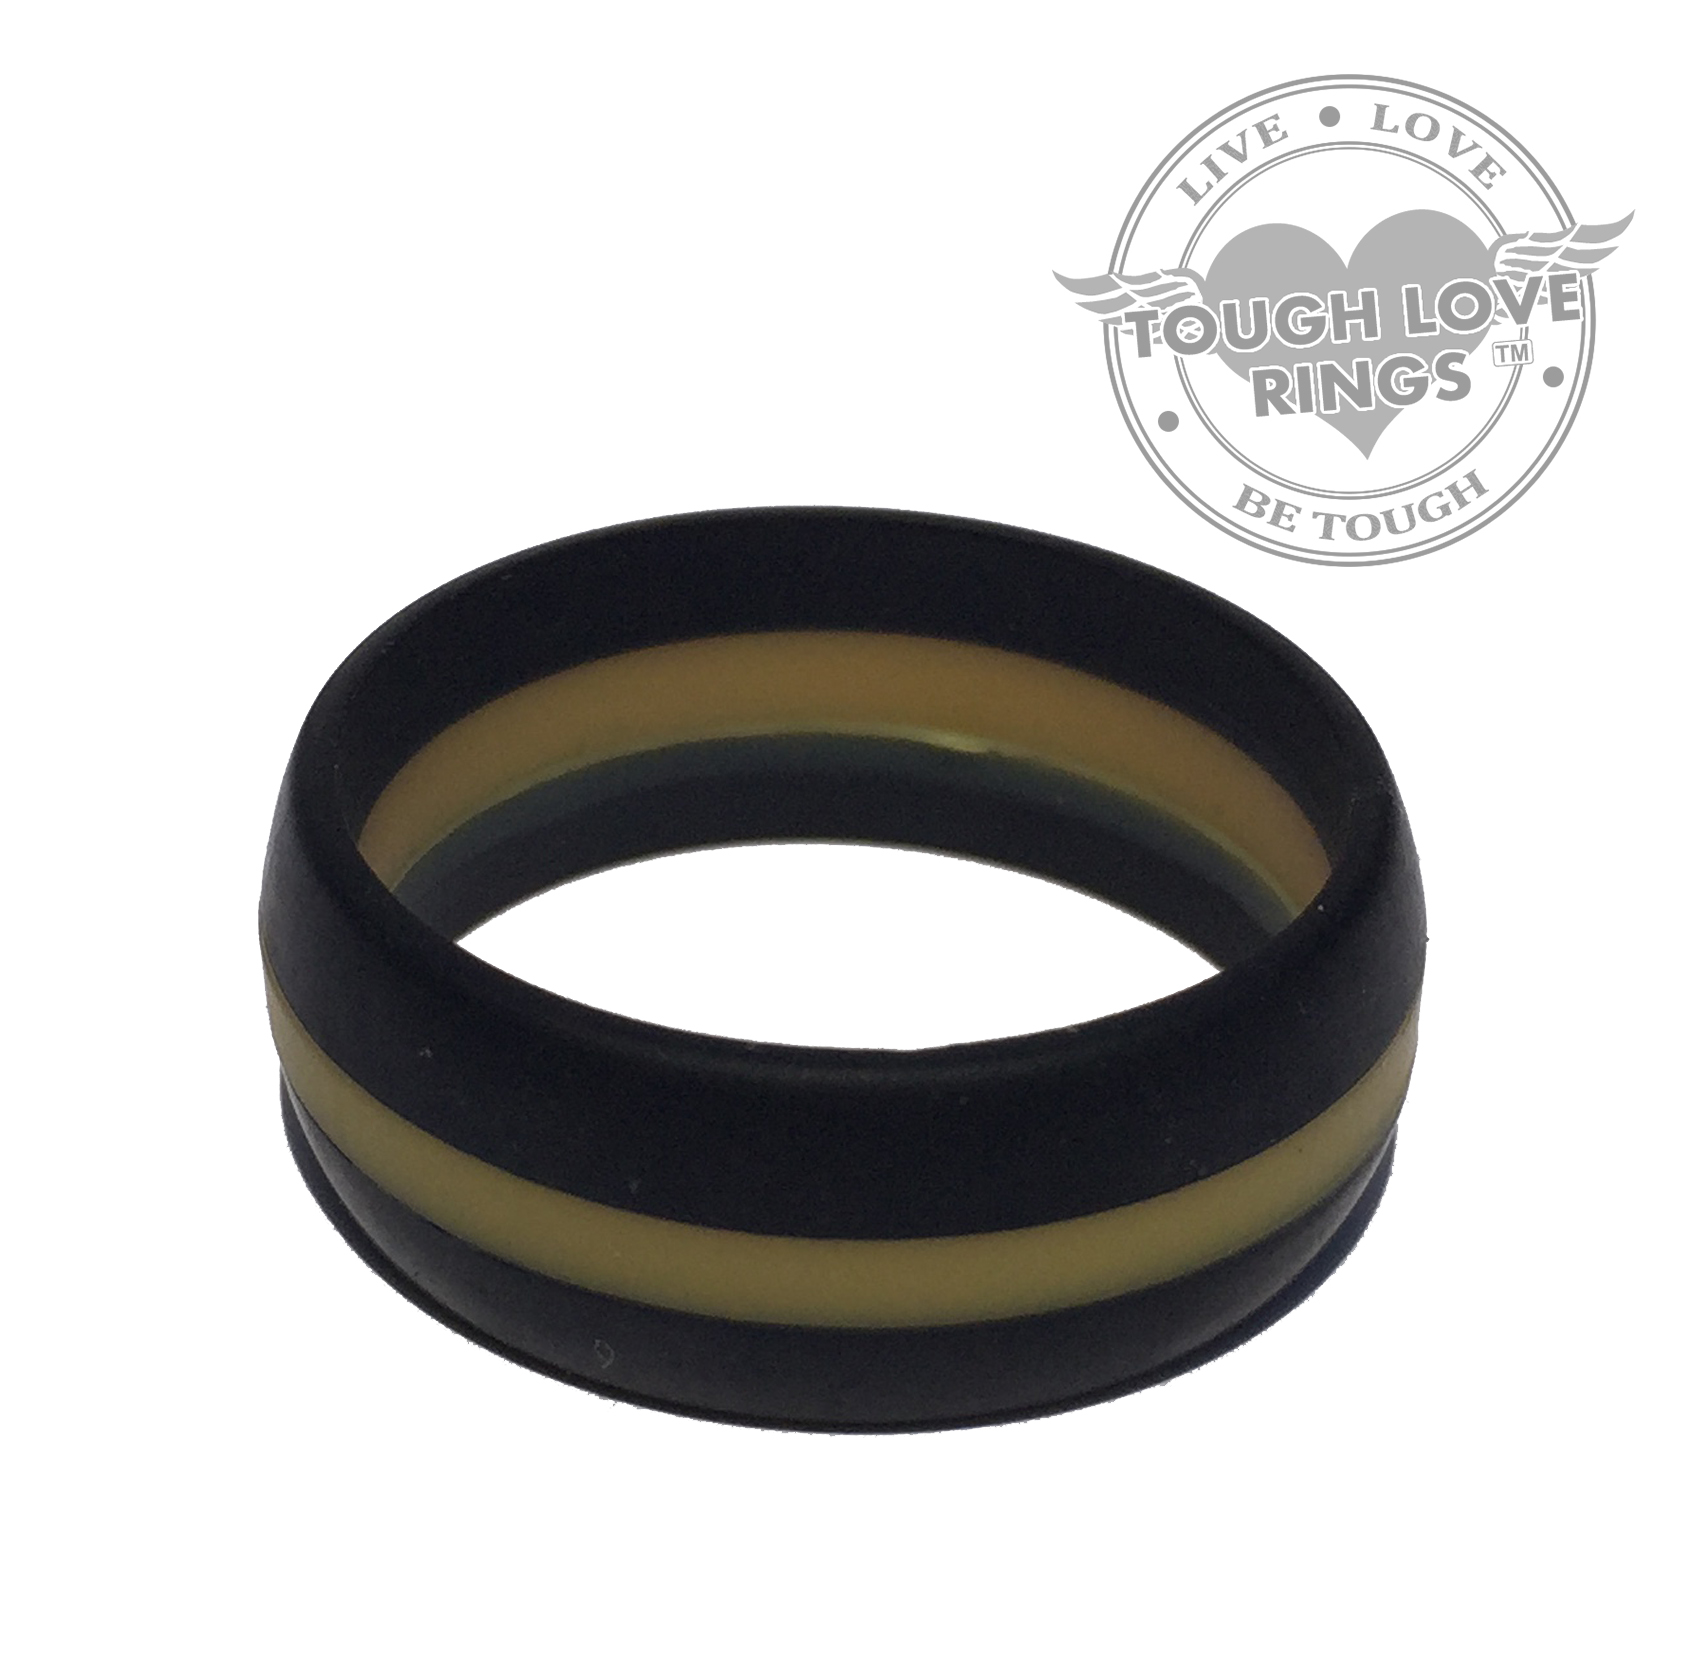 elegance black products collection kauai silicone rings timeless knight ring